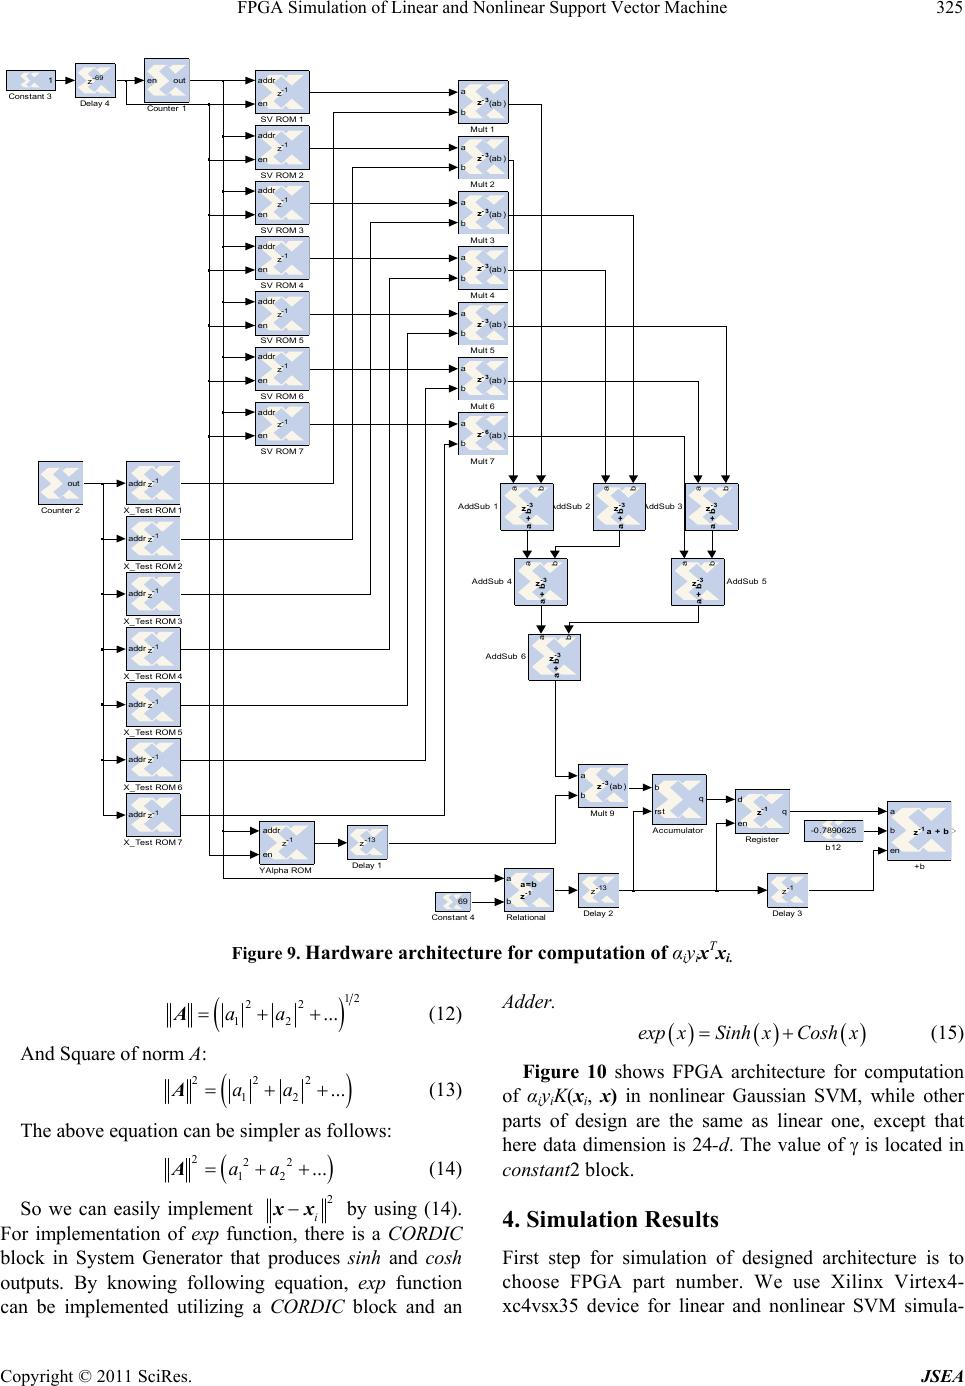 FPGA Simulation of Linear and Nonlinear Support Vector